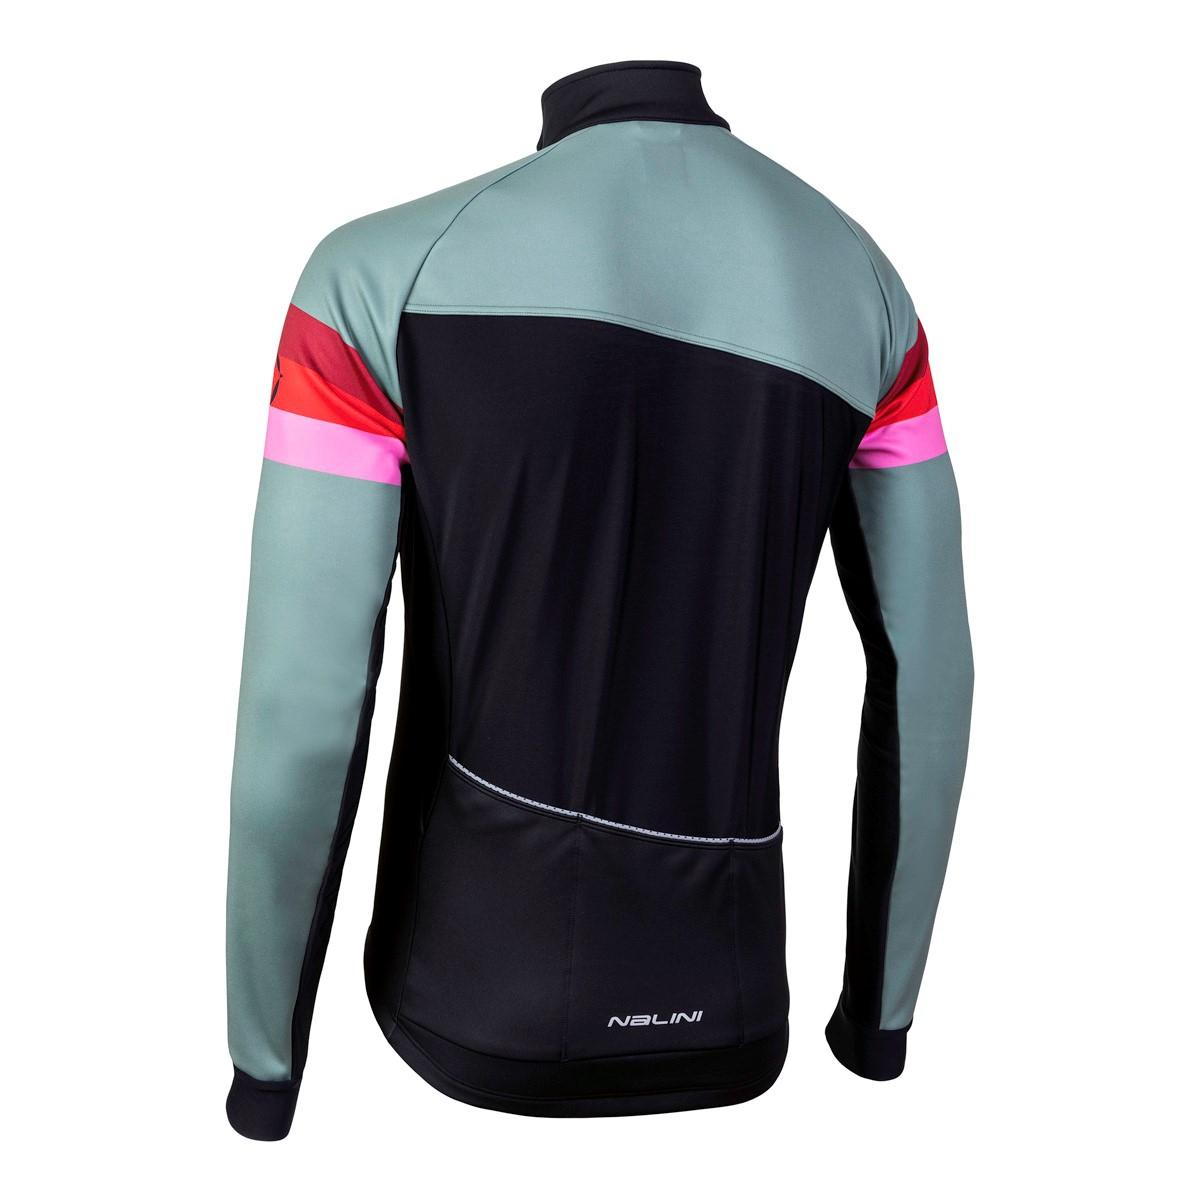 Afbeelding Nalini Fietsjack Heren Groen Zwart - AIW CRIT WARM JACKET 2.0 WINTER JACKET GREEN/BLACK